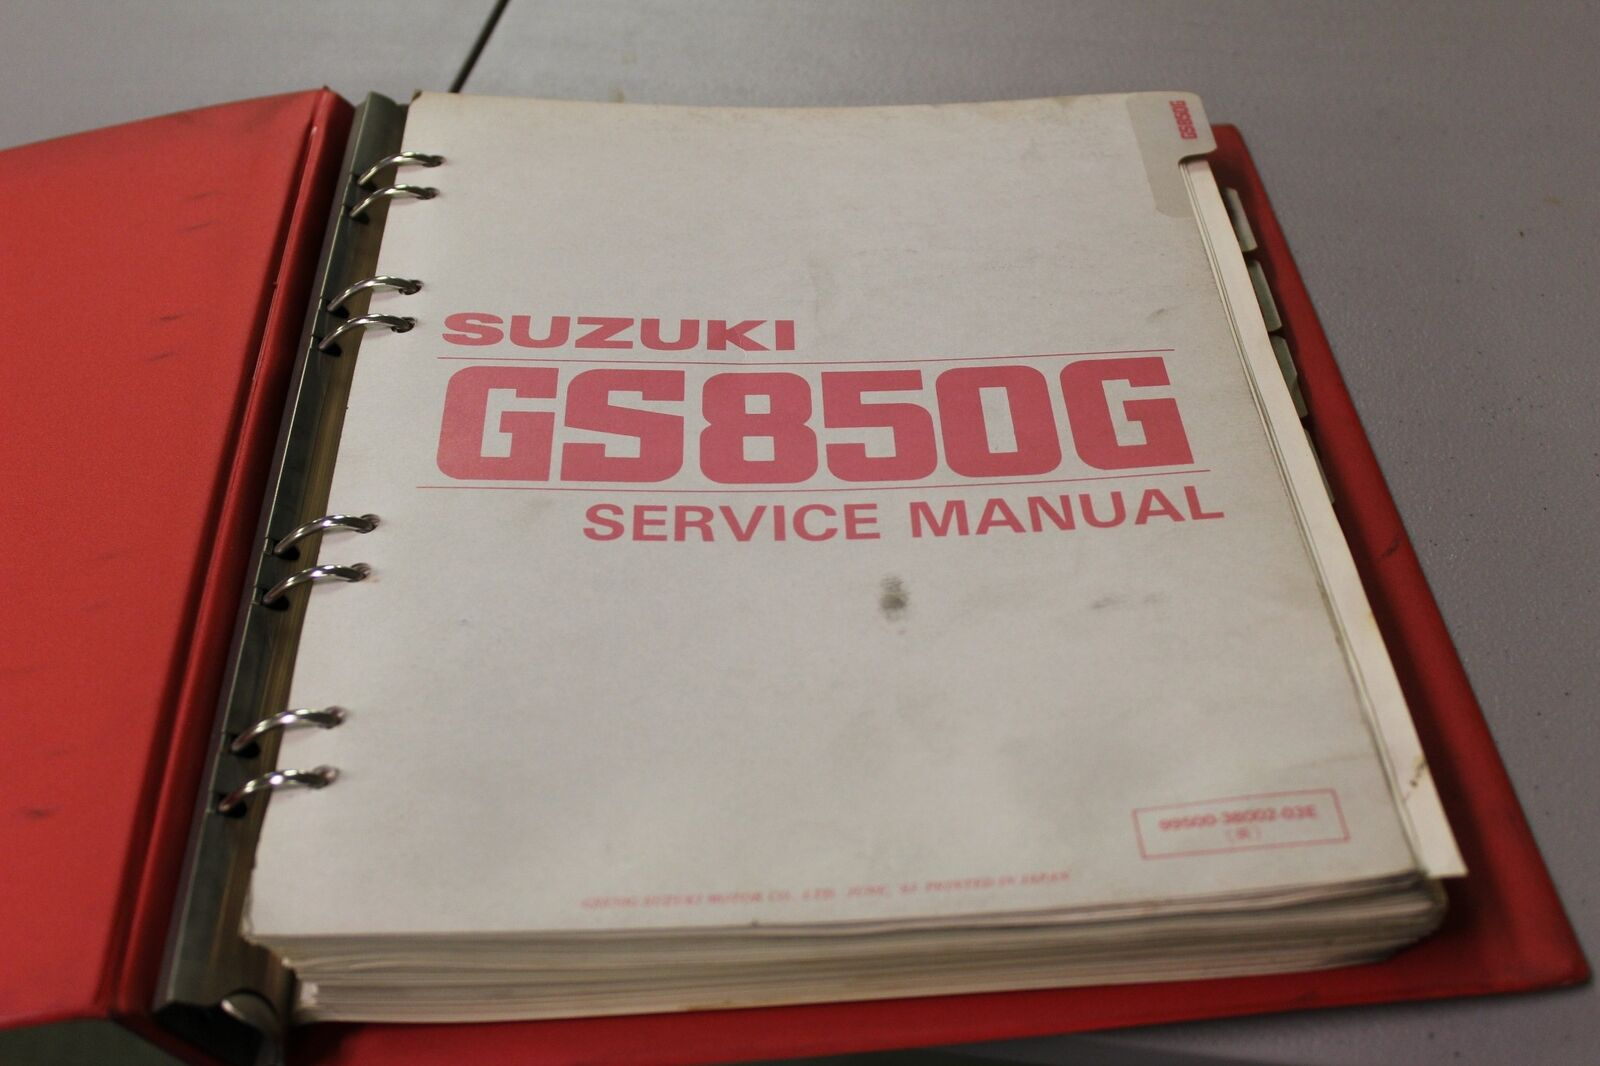 Suzuki OEM Service Repair Manual GS850G + Supplements GT/GLT/GX/GLX/ 1 of  2Only 1 available ...